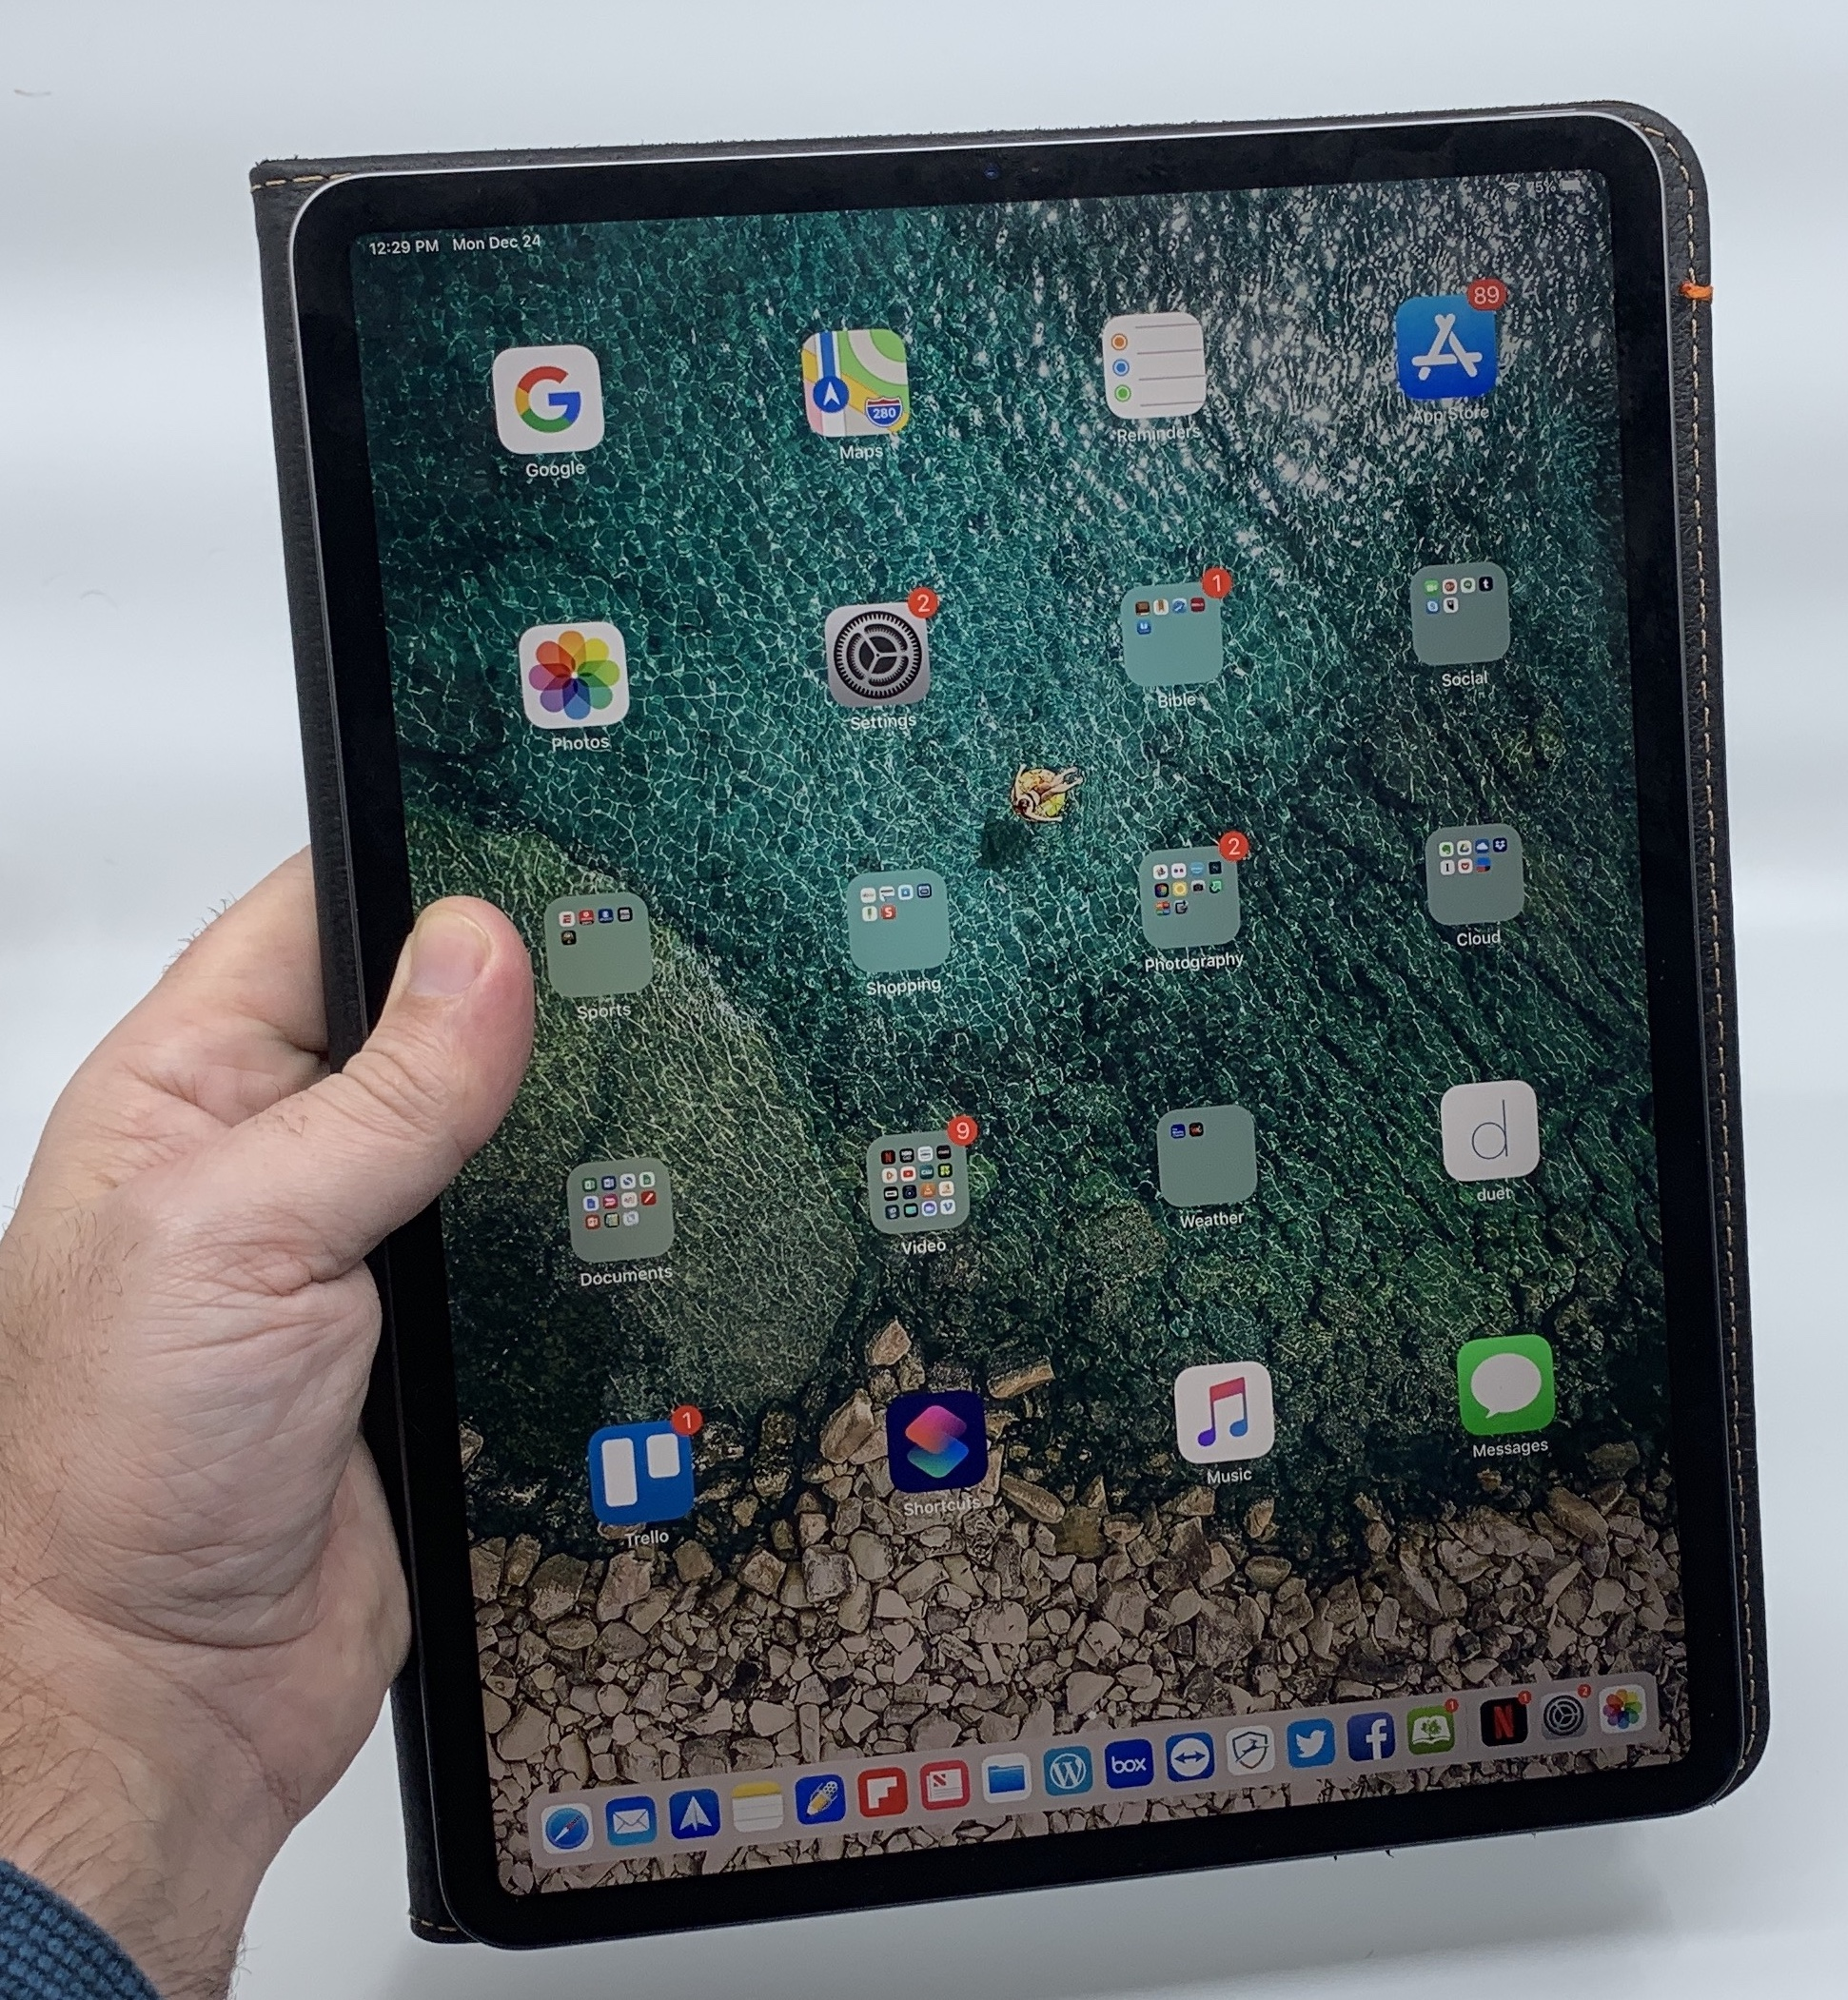 Apps to Help Bridge the Gaps Between the iPad Pro and a Laptop